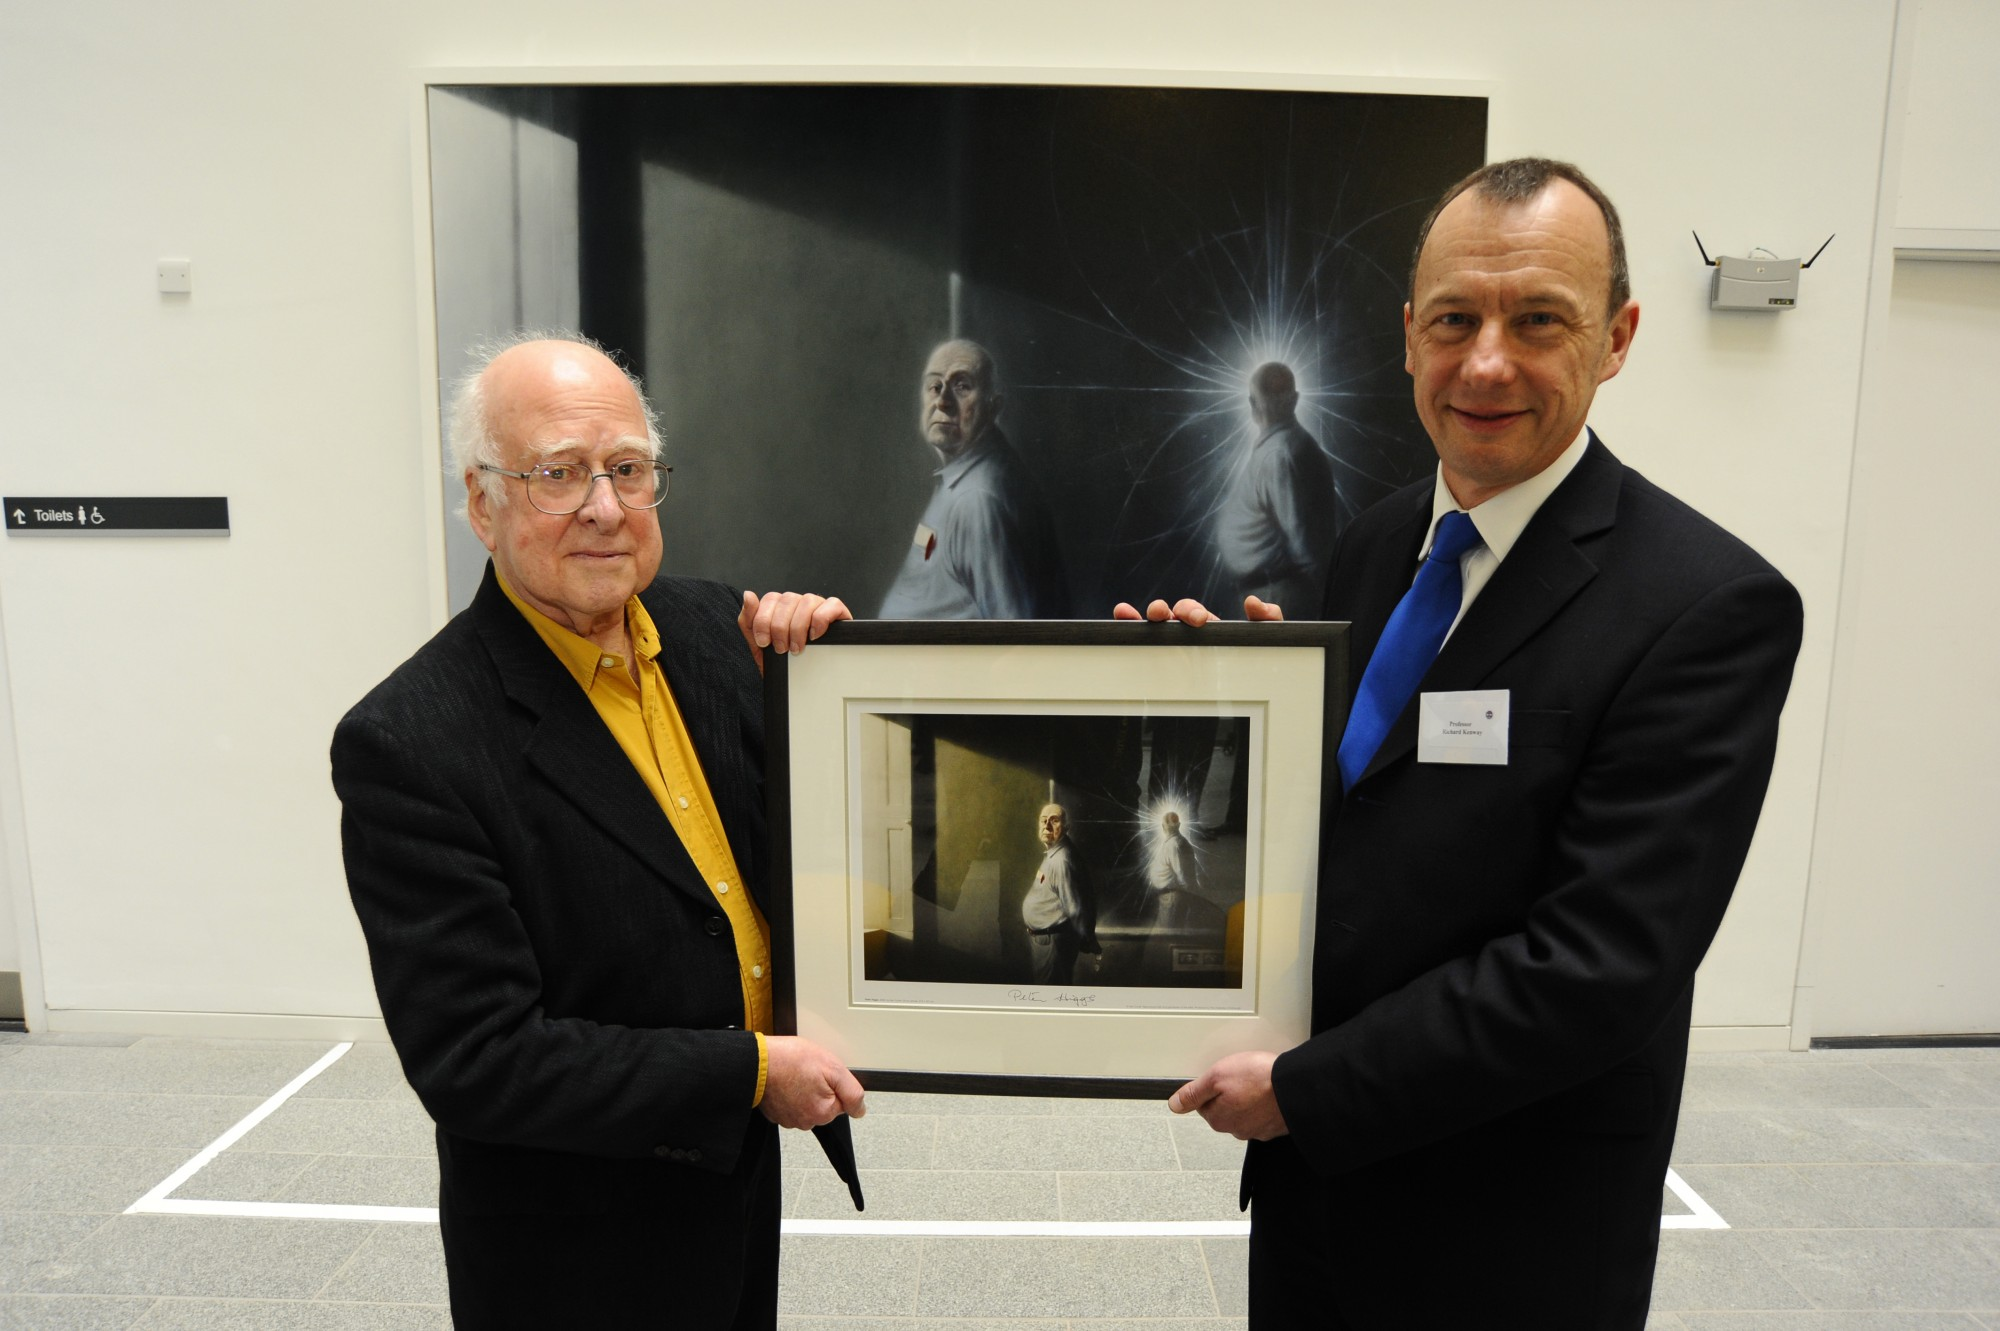 Professor Richard Kenway presents Peter Higgs with a framed print of his portrait by Ken Currie at the unveiling on 2nd March 2009.